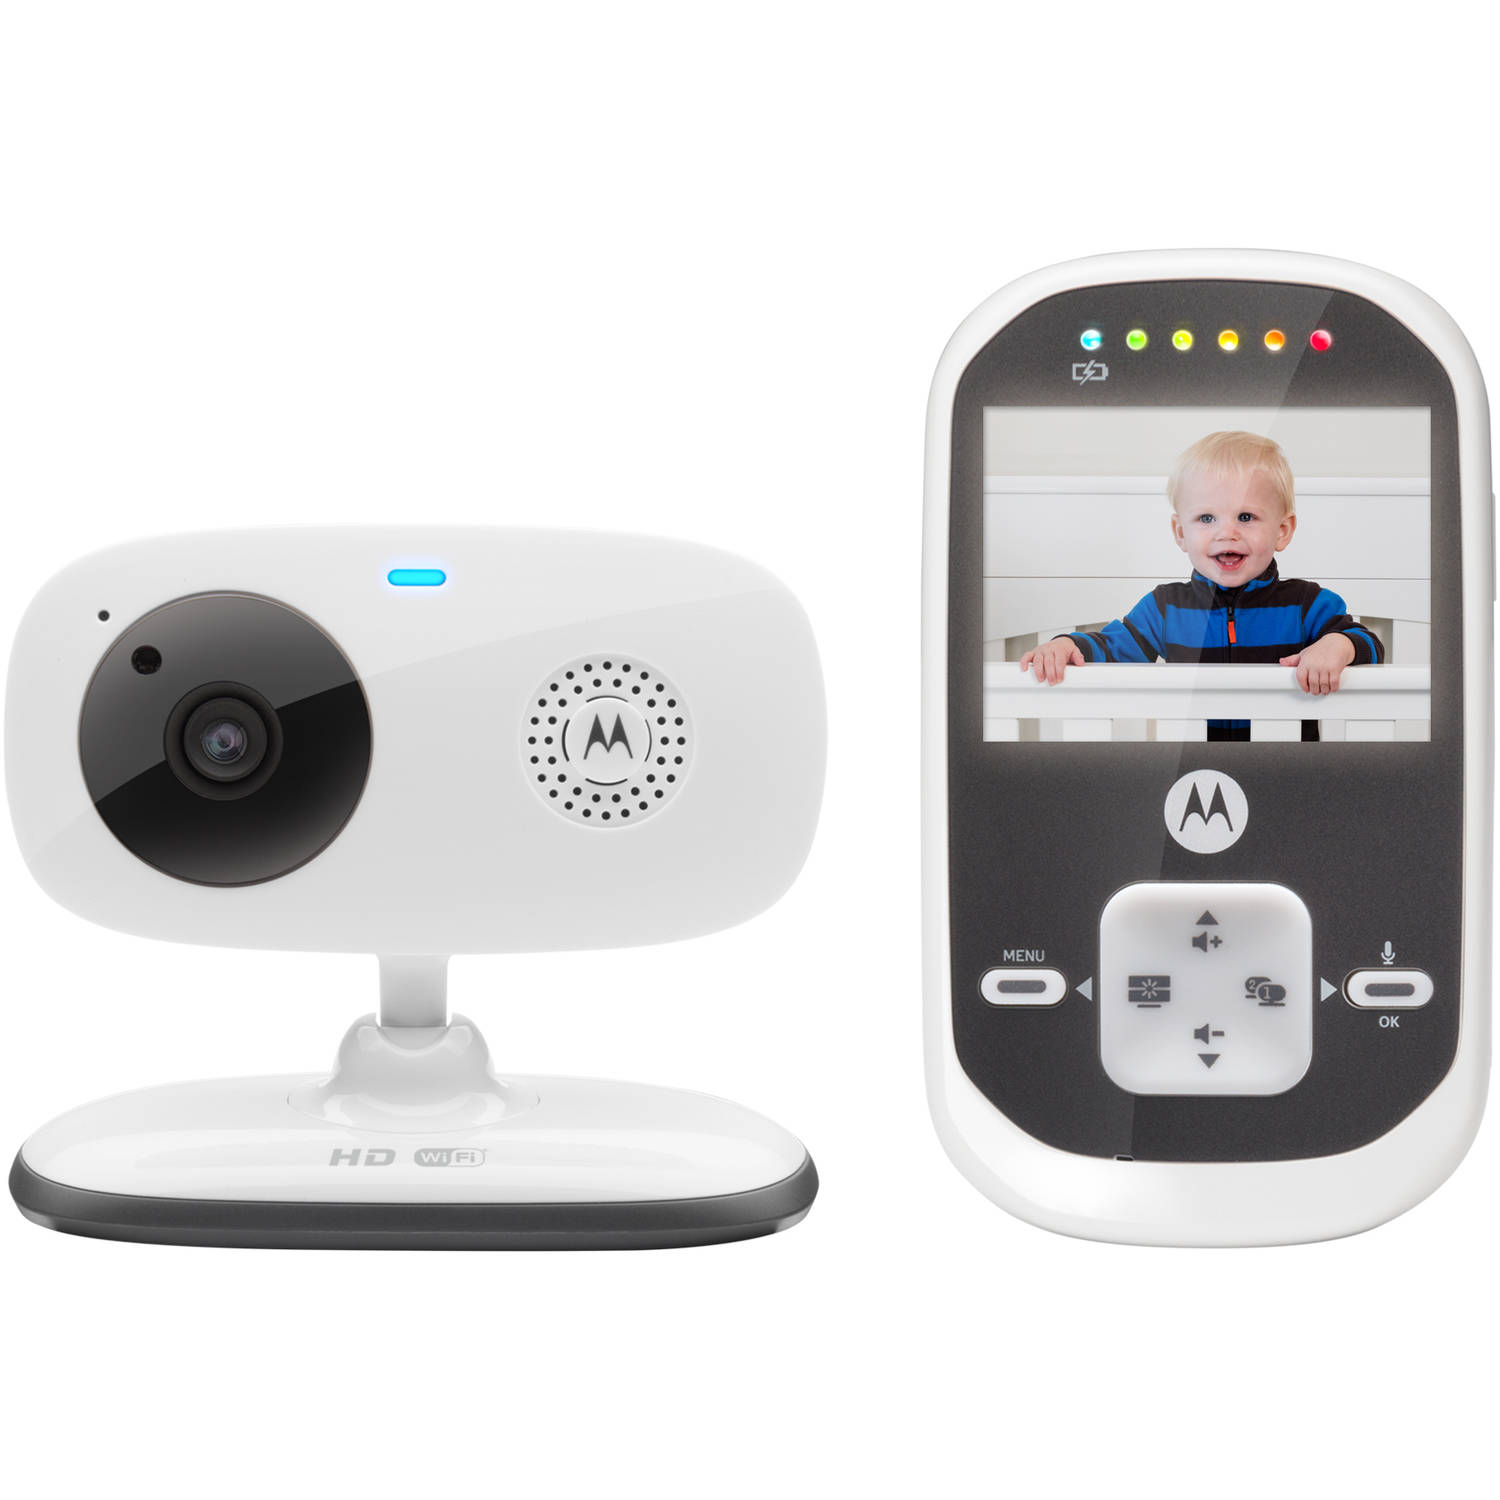 Motorola MBP662CONNECT Digital Video Baby Monitor with Wi-Fi Internet Viewing